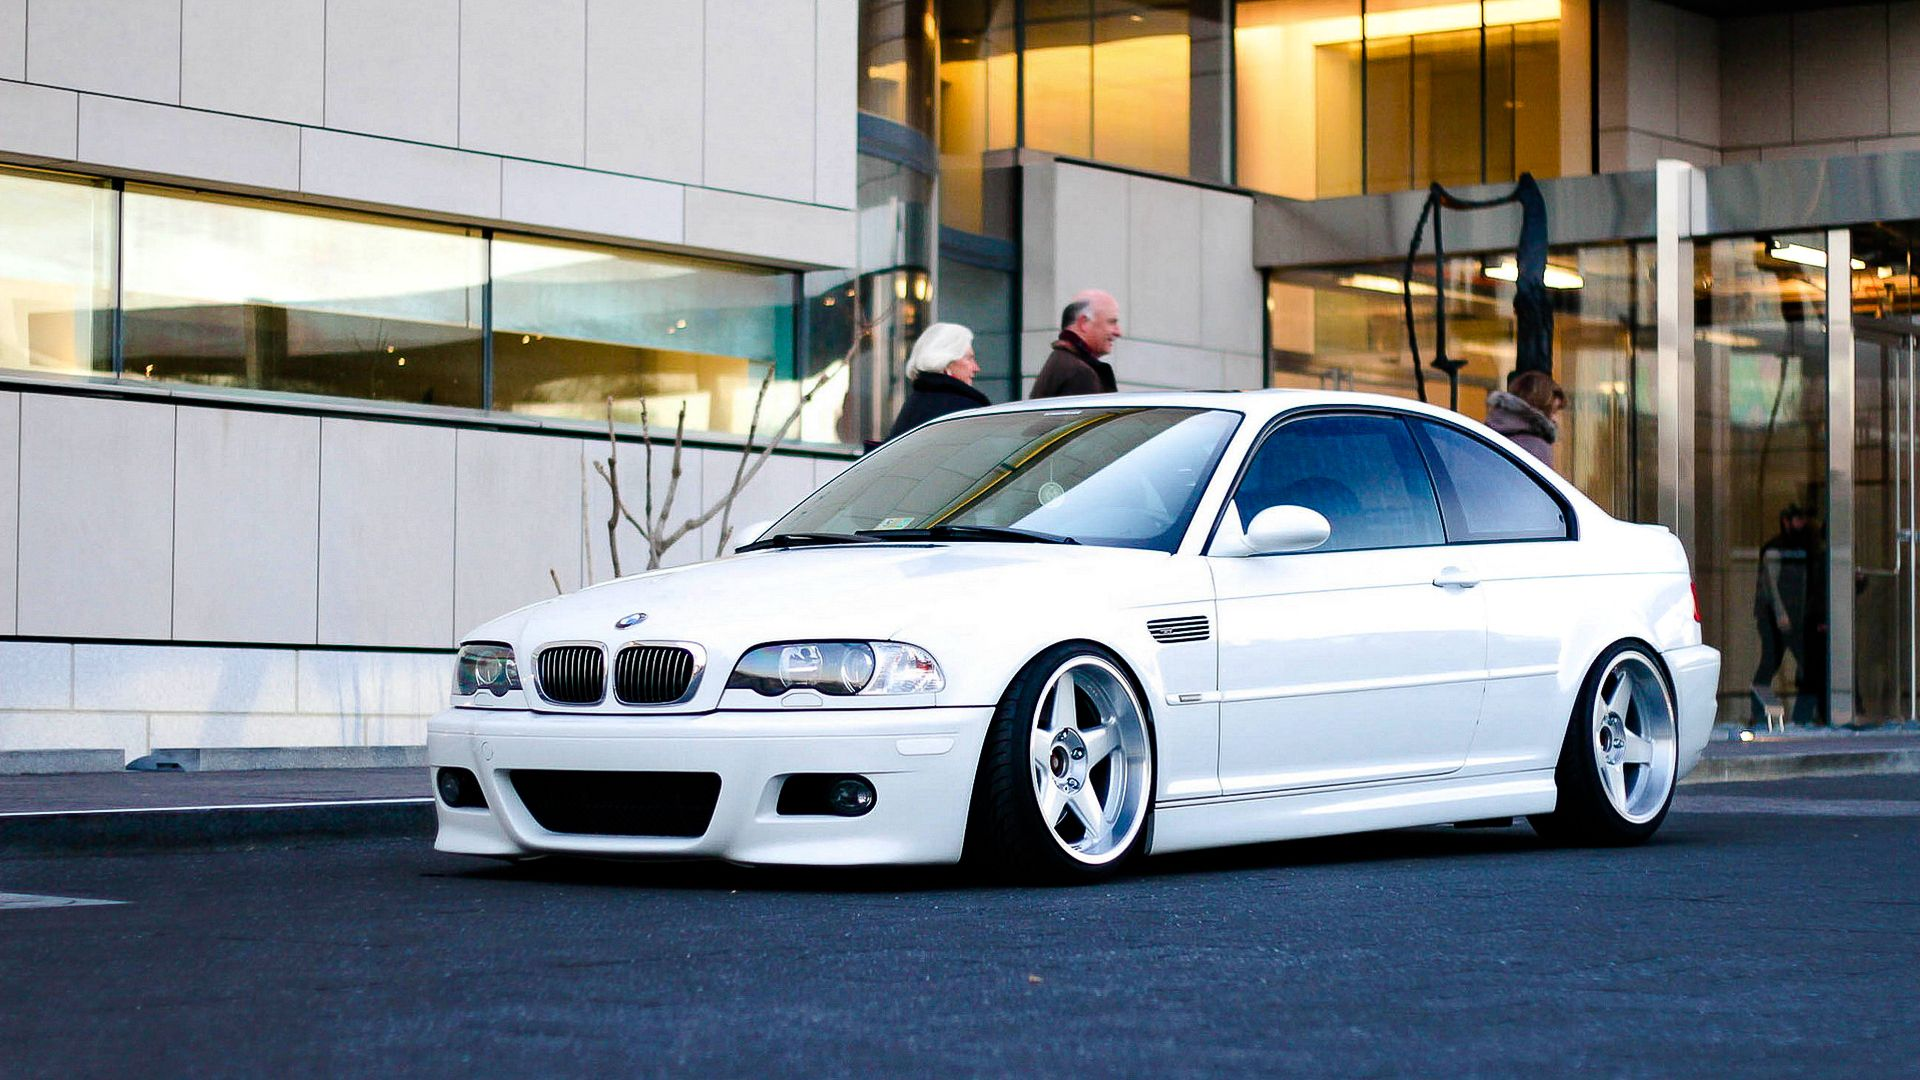 Bmw M3 E46 All White Stanced Low Lifestyle Clean Car 300hp